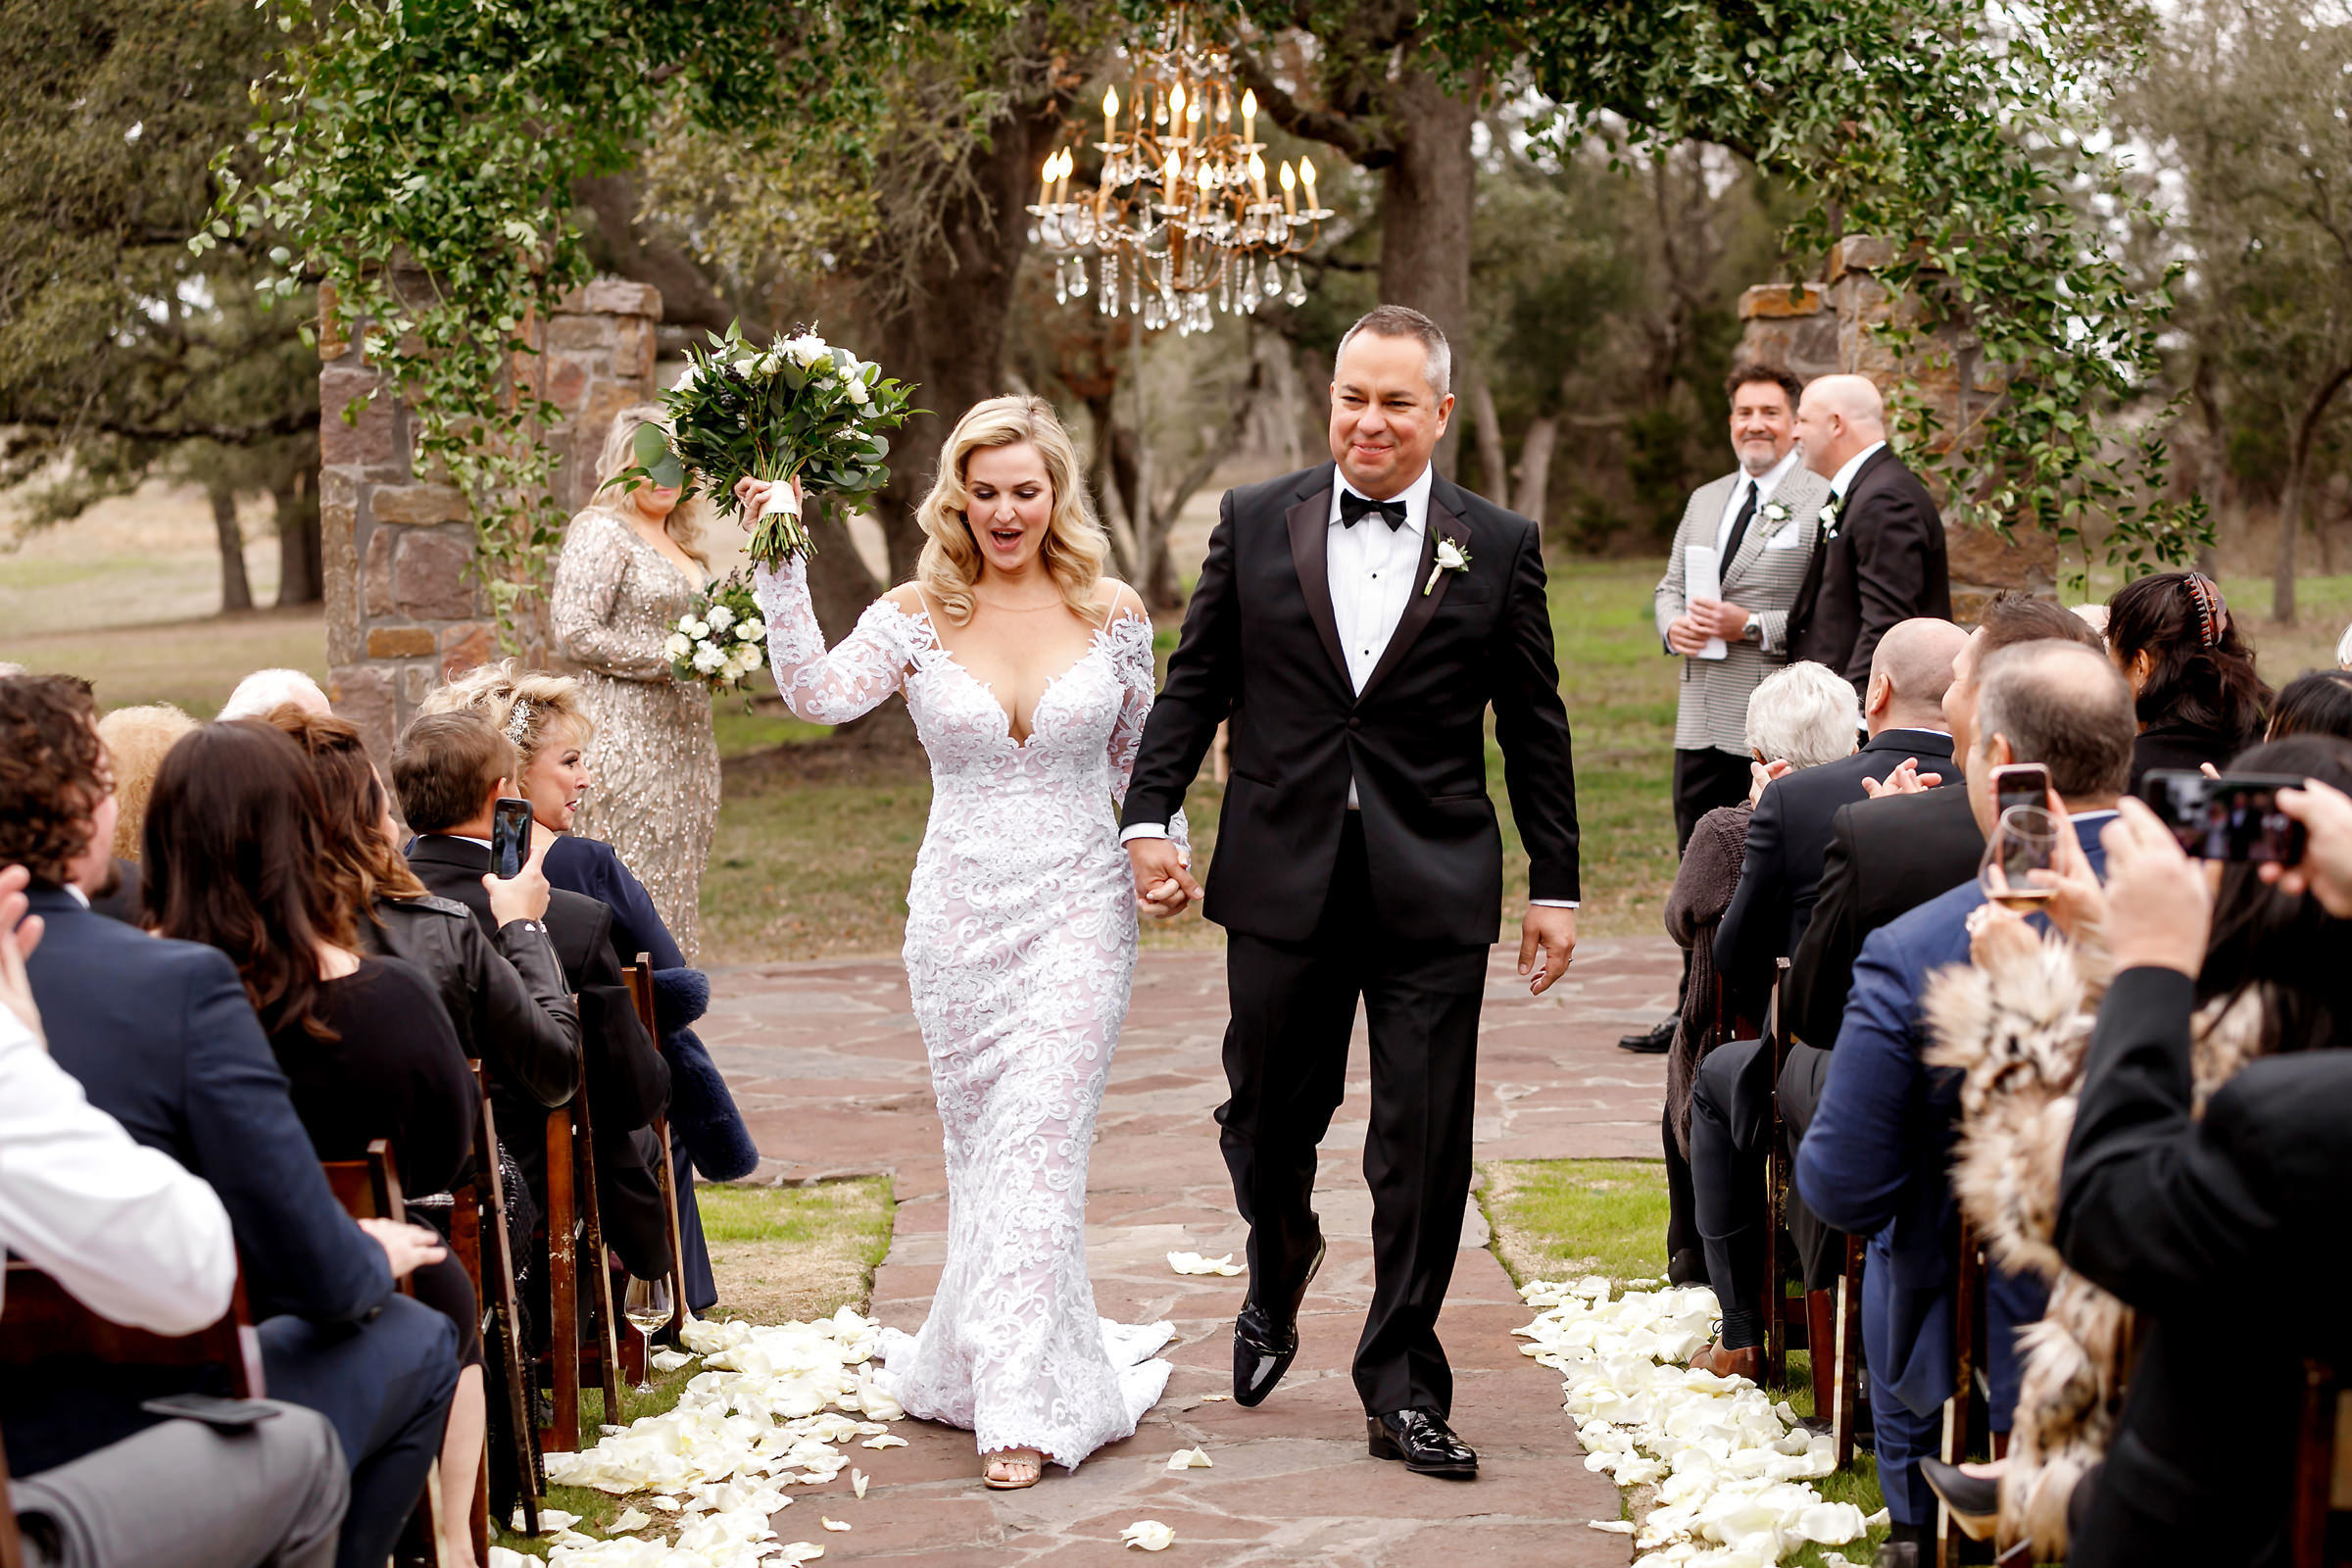 Outdoor couple recessional - photo by Jenny DeMarco Photography